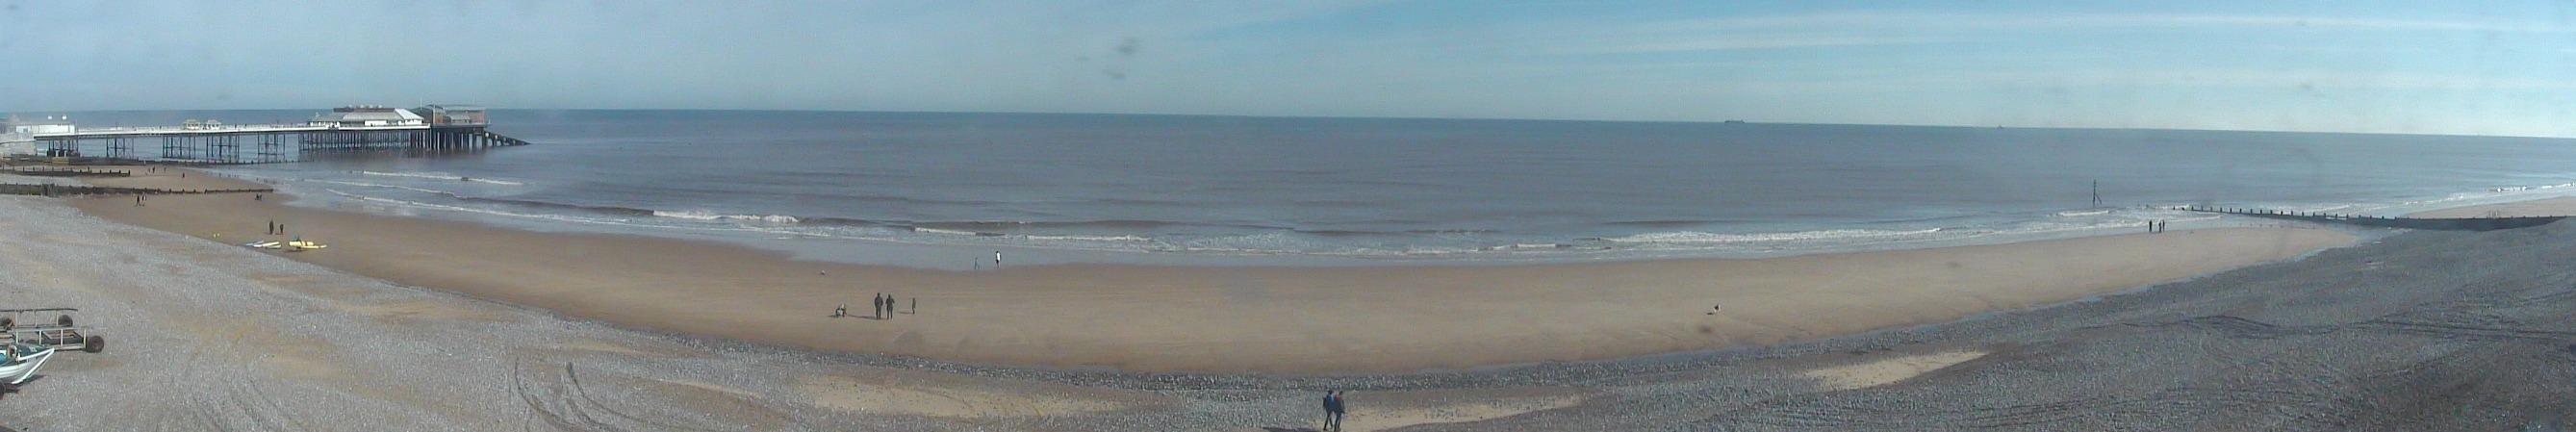 Latest webcam still for Cromer